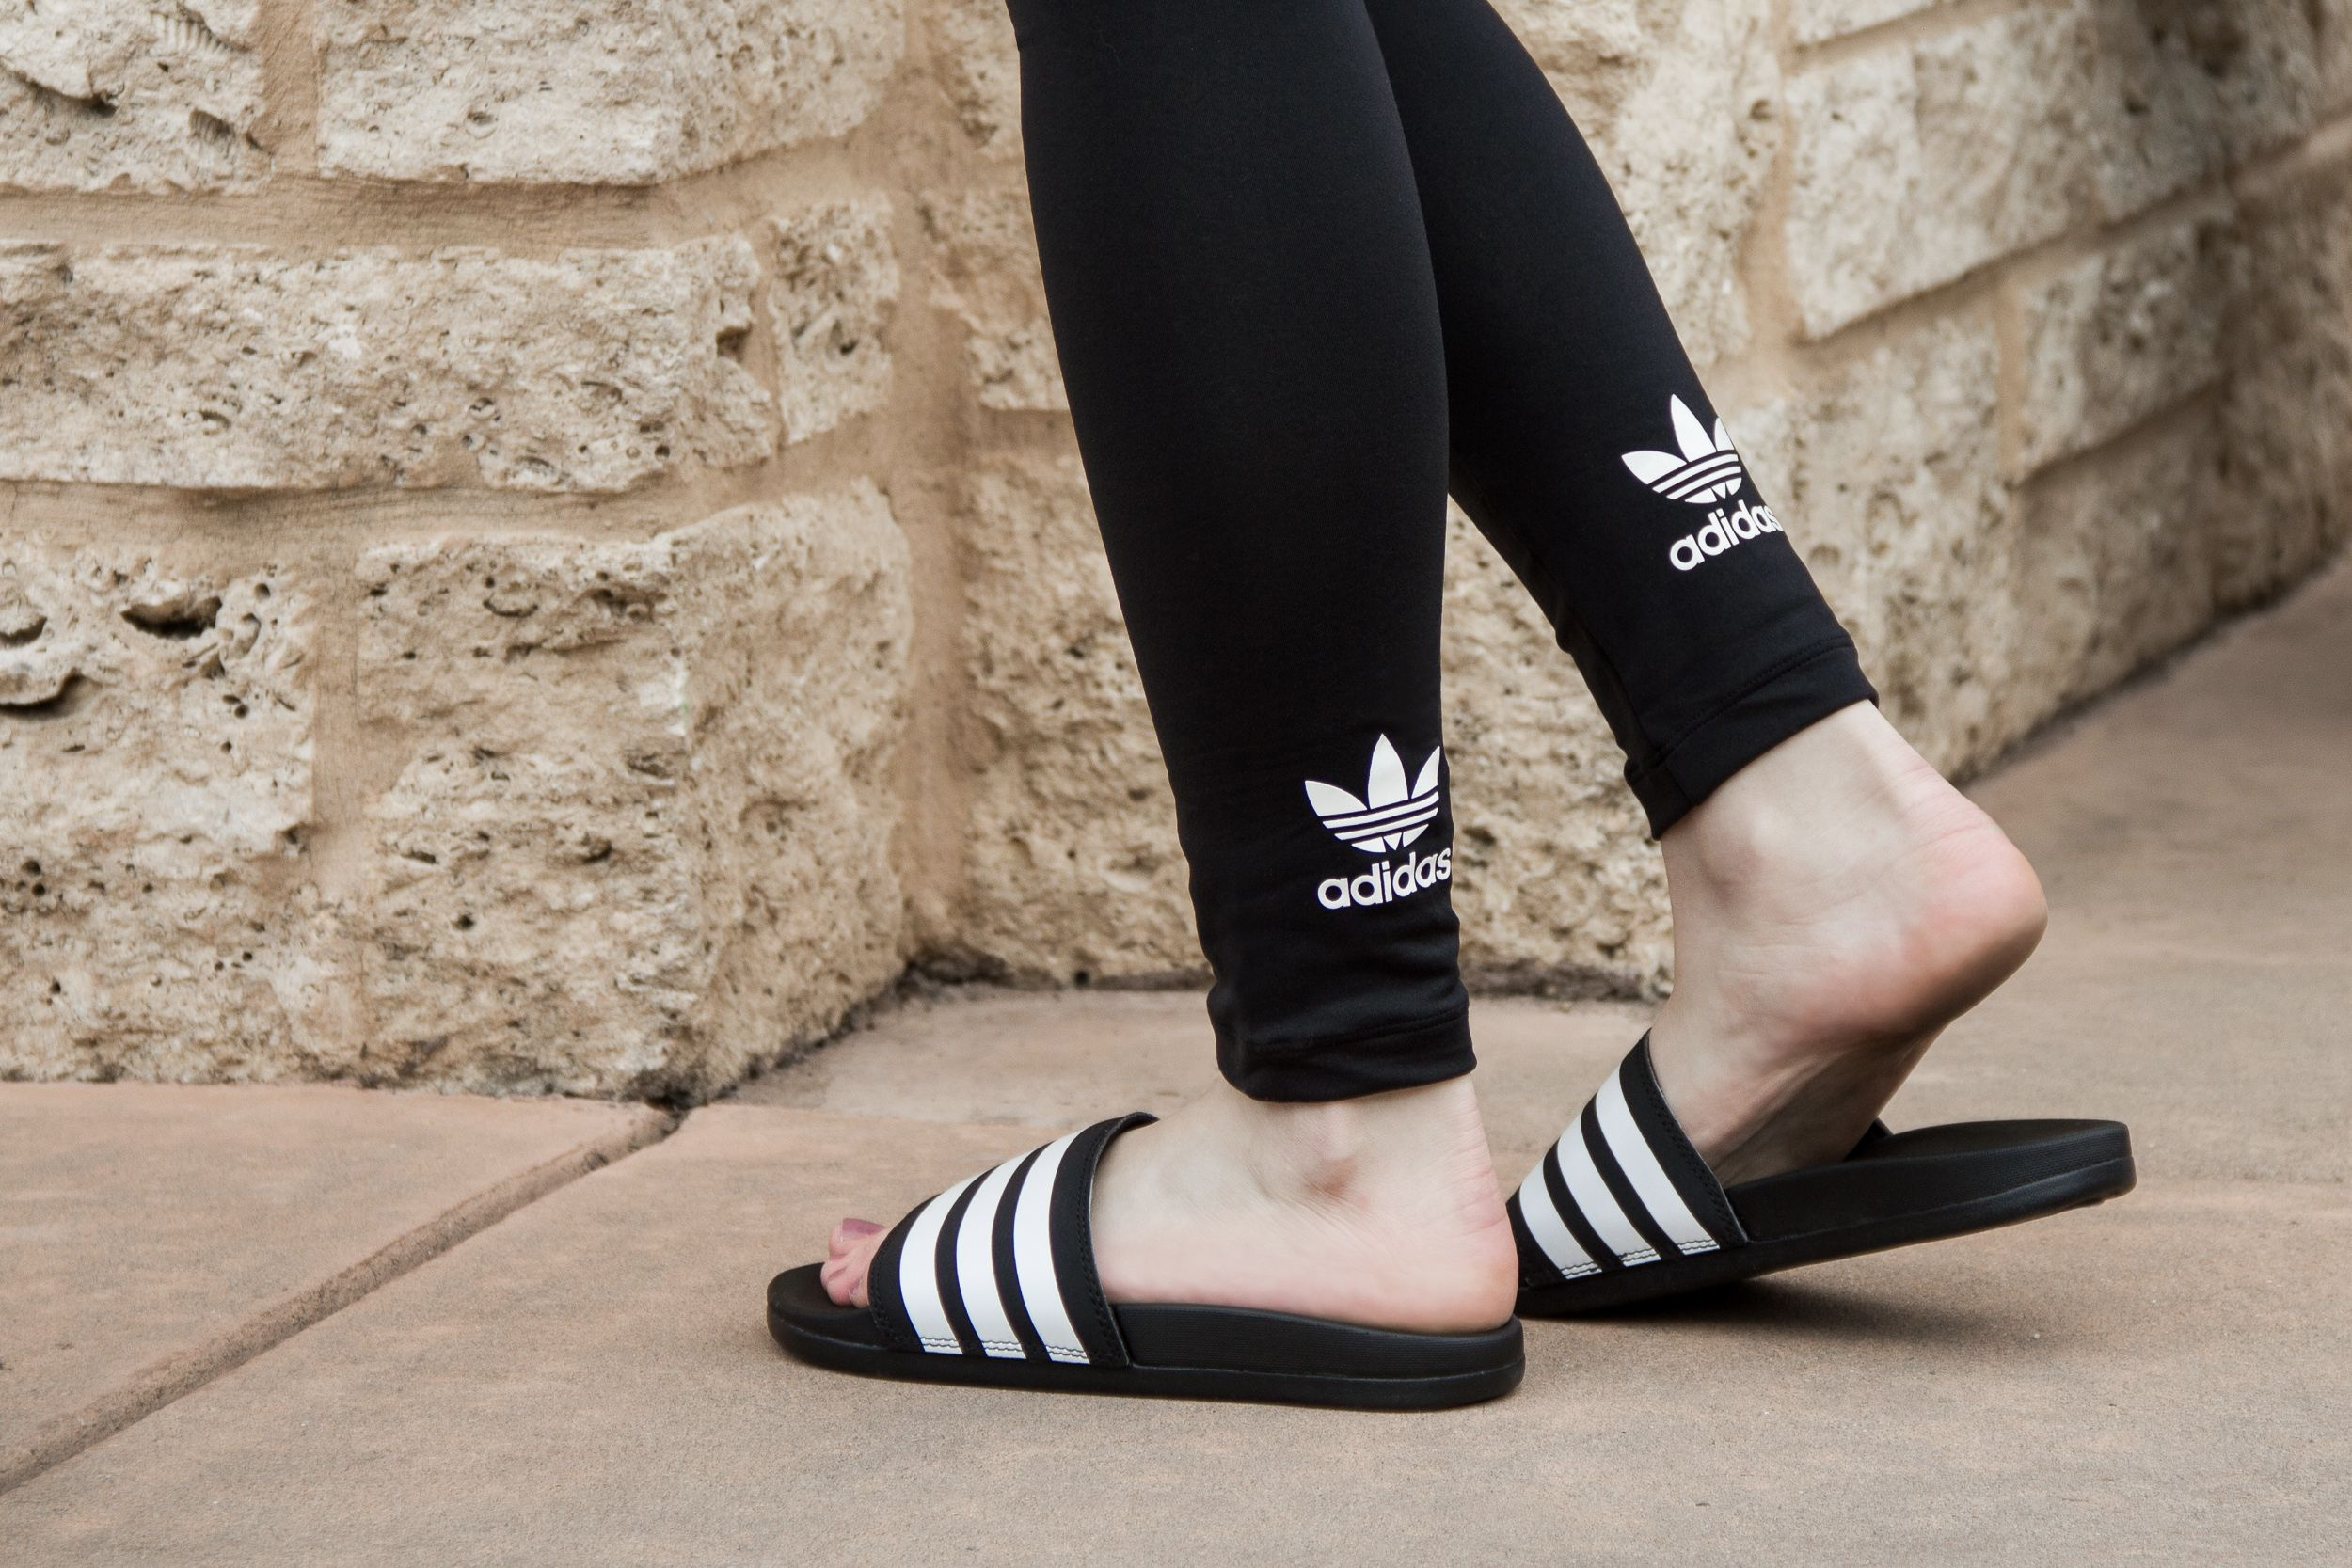 Adidas Adilette Cloudfoam Plus Slide AP9971 - Black White ... 32dbd2b96